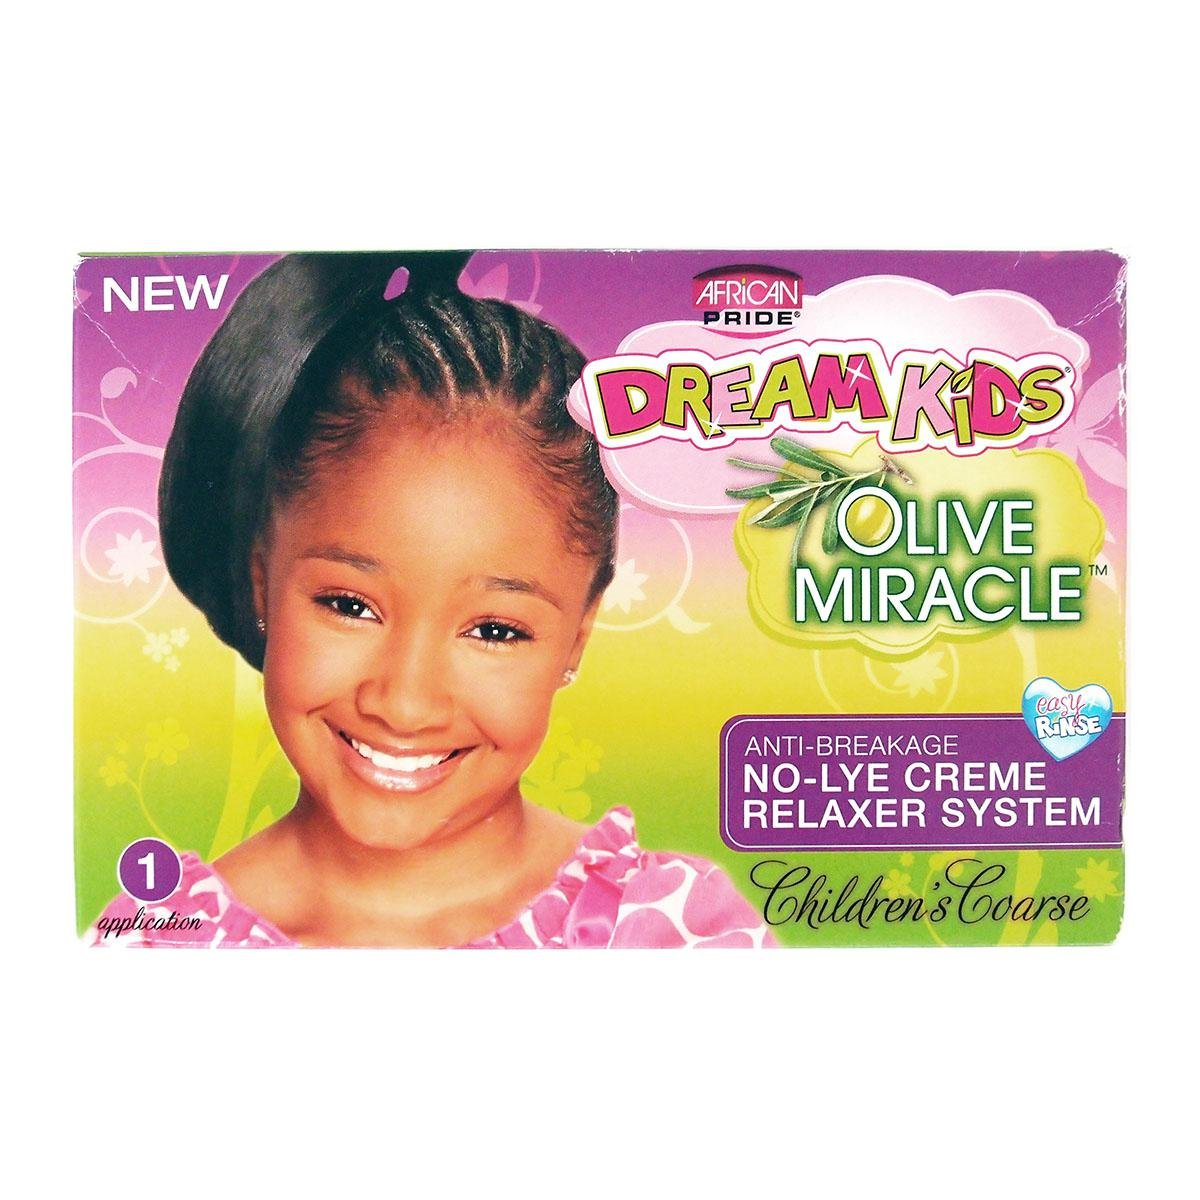 African Pride Dream Kids Olive Miracle Relaxer Coarse B006B6L60A